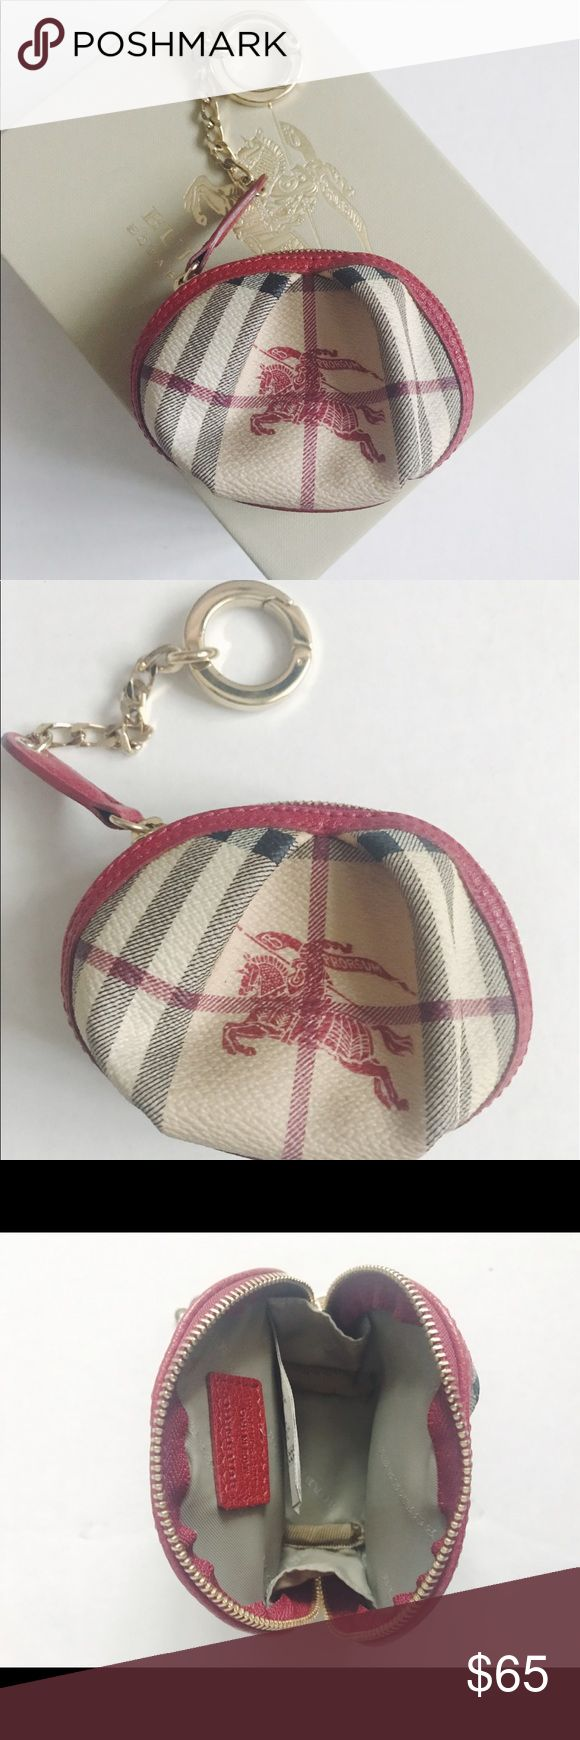 Burberry Coin Purse with Keyring Authentic Burberry Haymarket Coin Purse with leather red trim and gold keyring. Approximately 4 inches long. Gently used. Can be attached to Handbag or used by itself.  Canvas material. Burberry Accessories Key & Card Holders